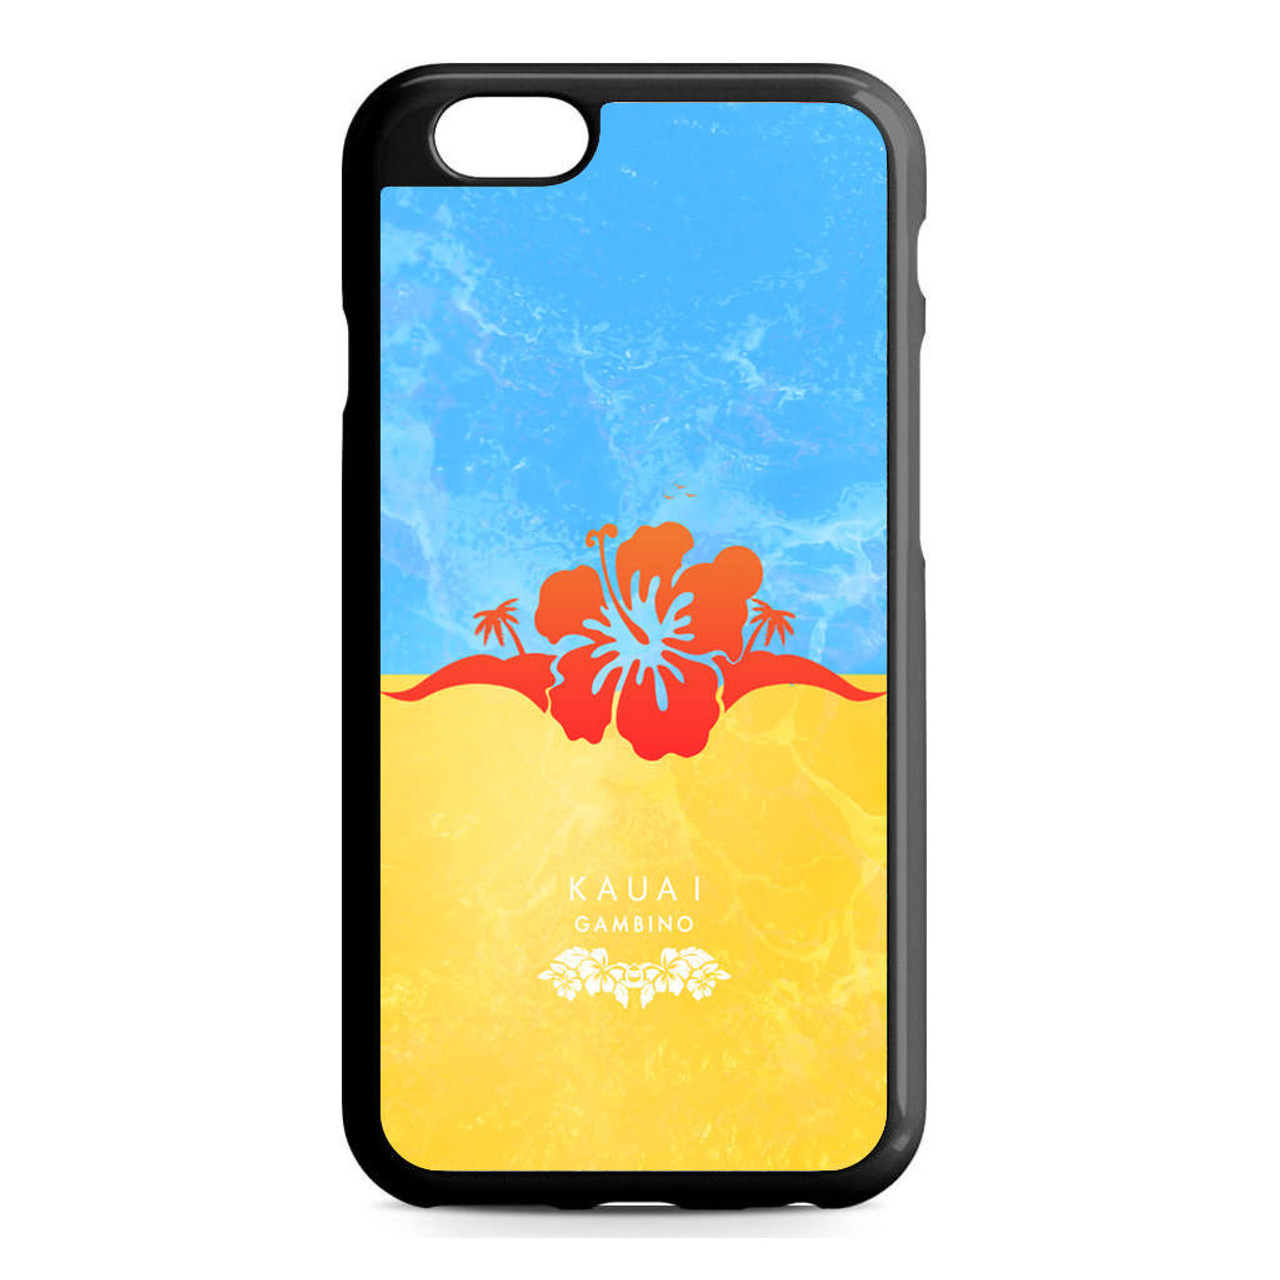 39ce013d847f STN MTN Kauai by Childish Gambino iPhone 6 6S Case - CASESHUNTER